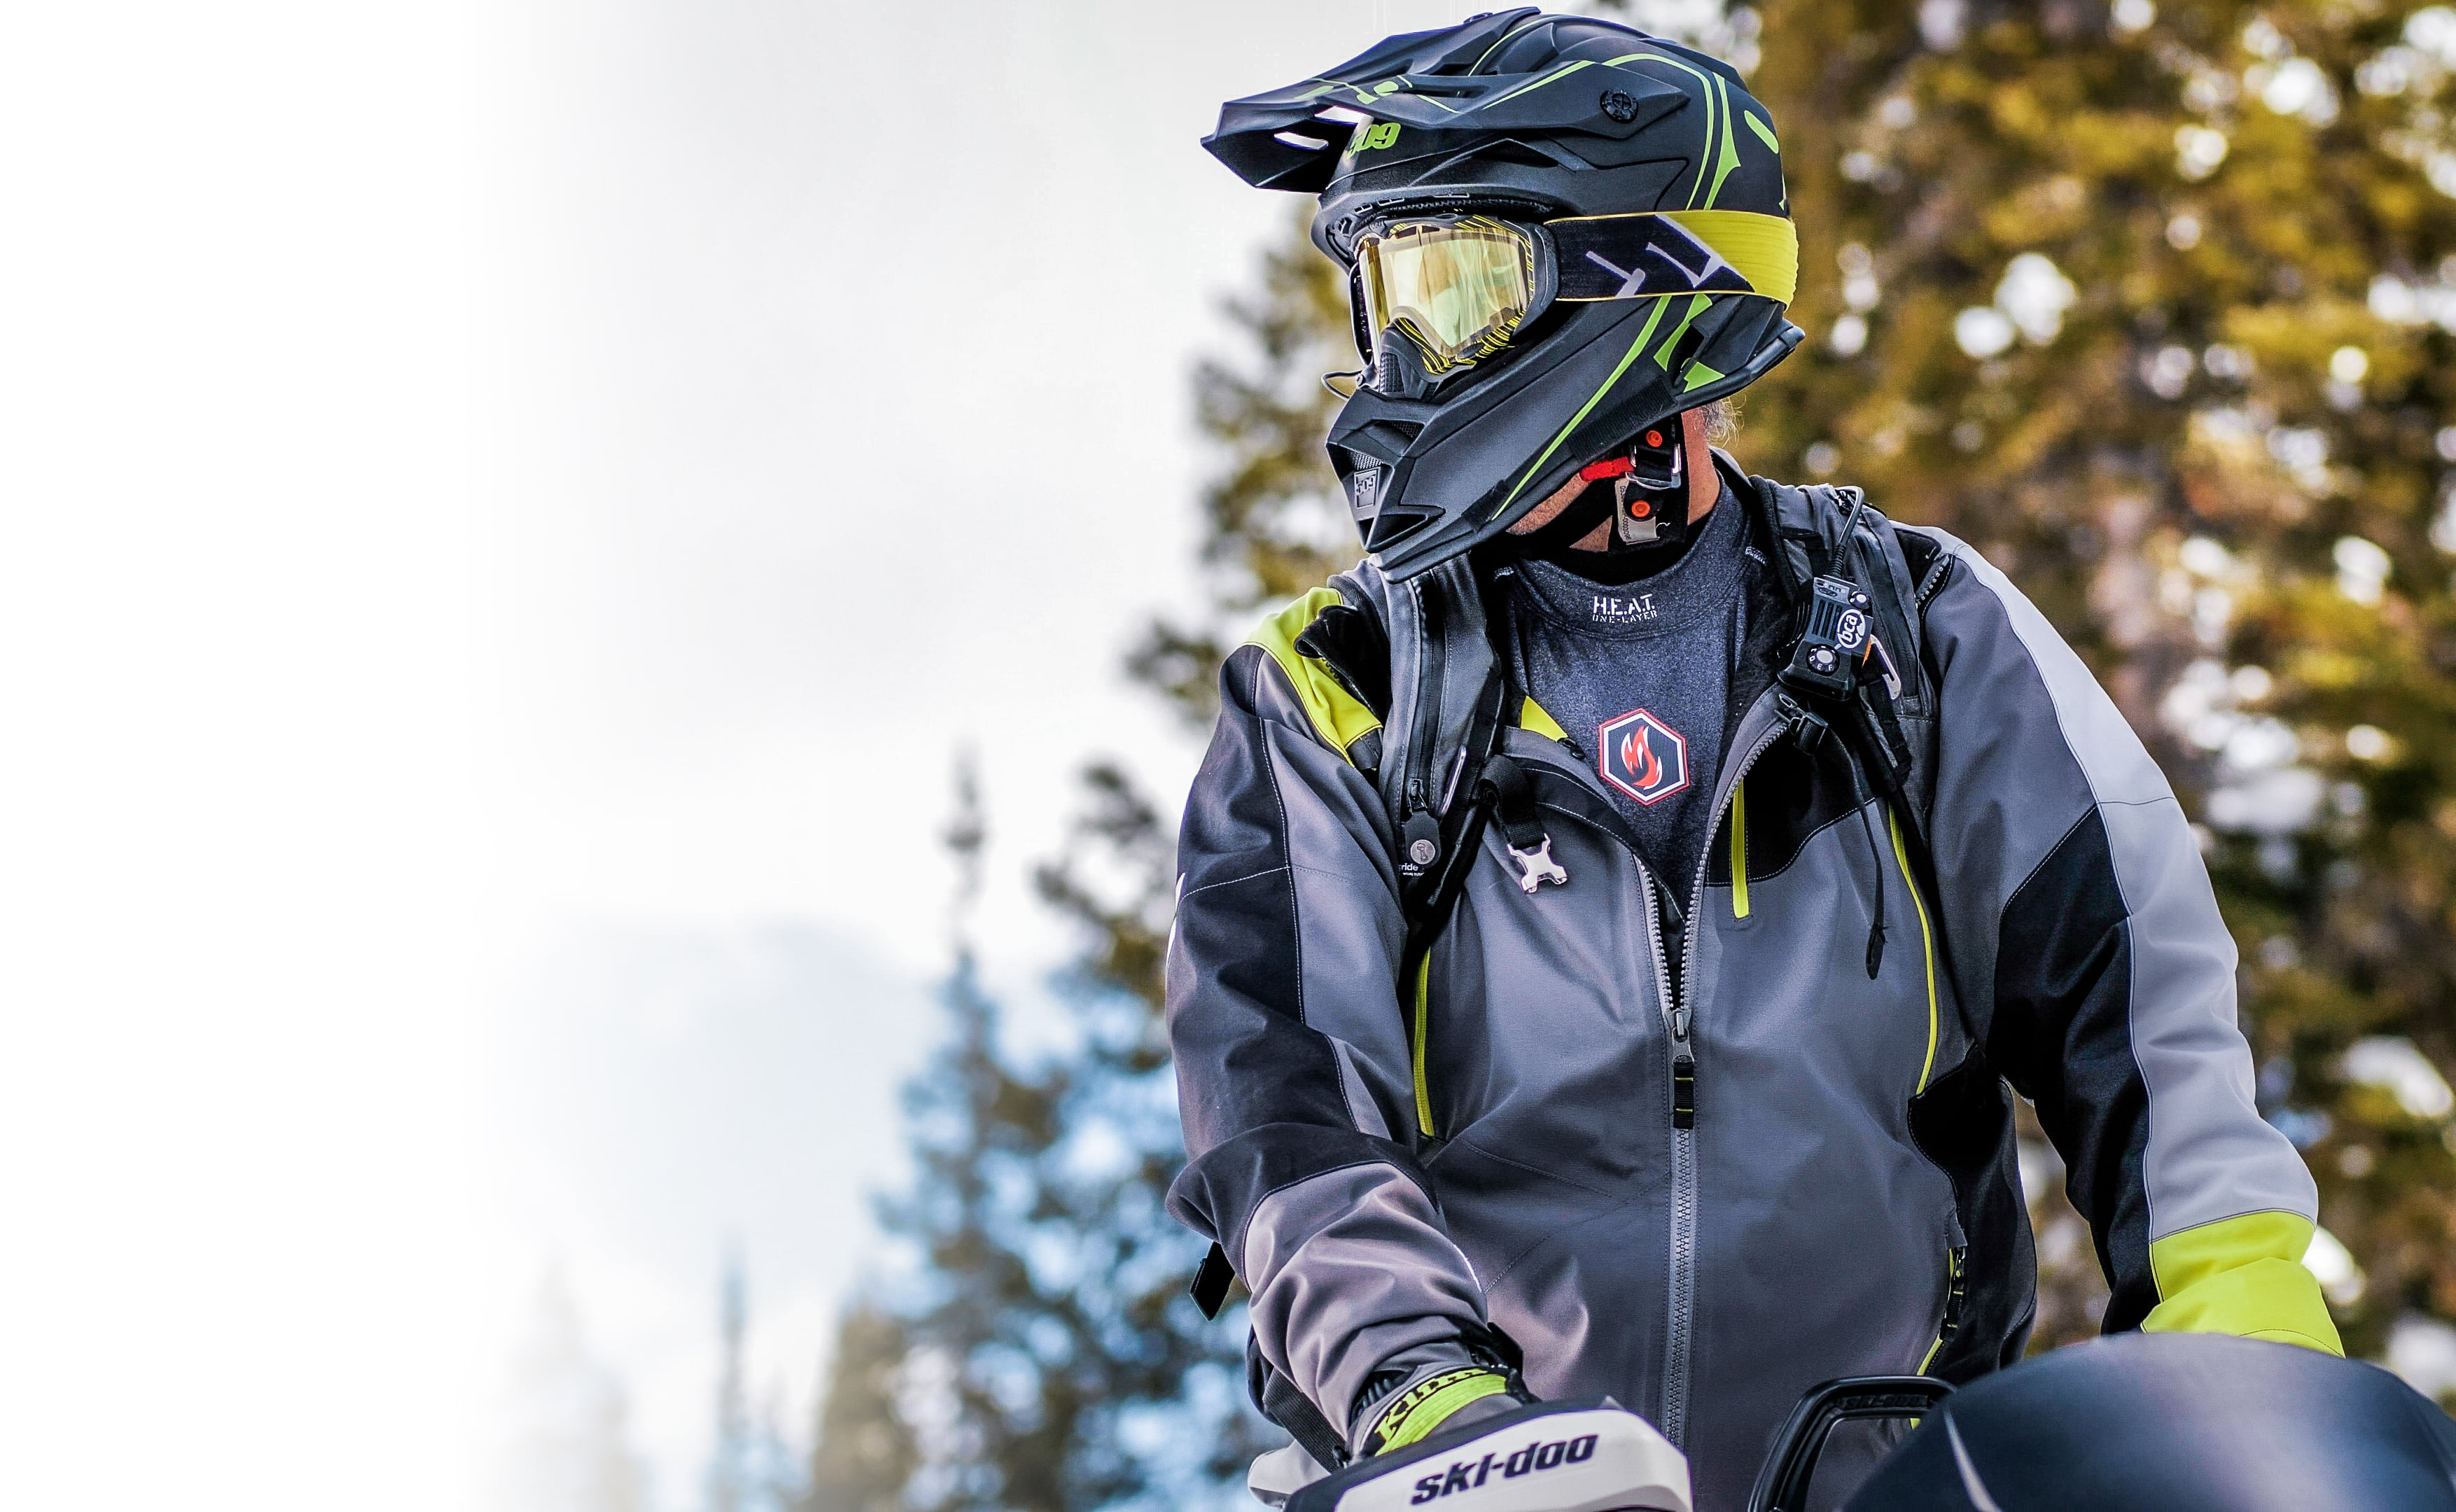 Guy on snow mobile wearing H.E.A.T. One-Layer